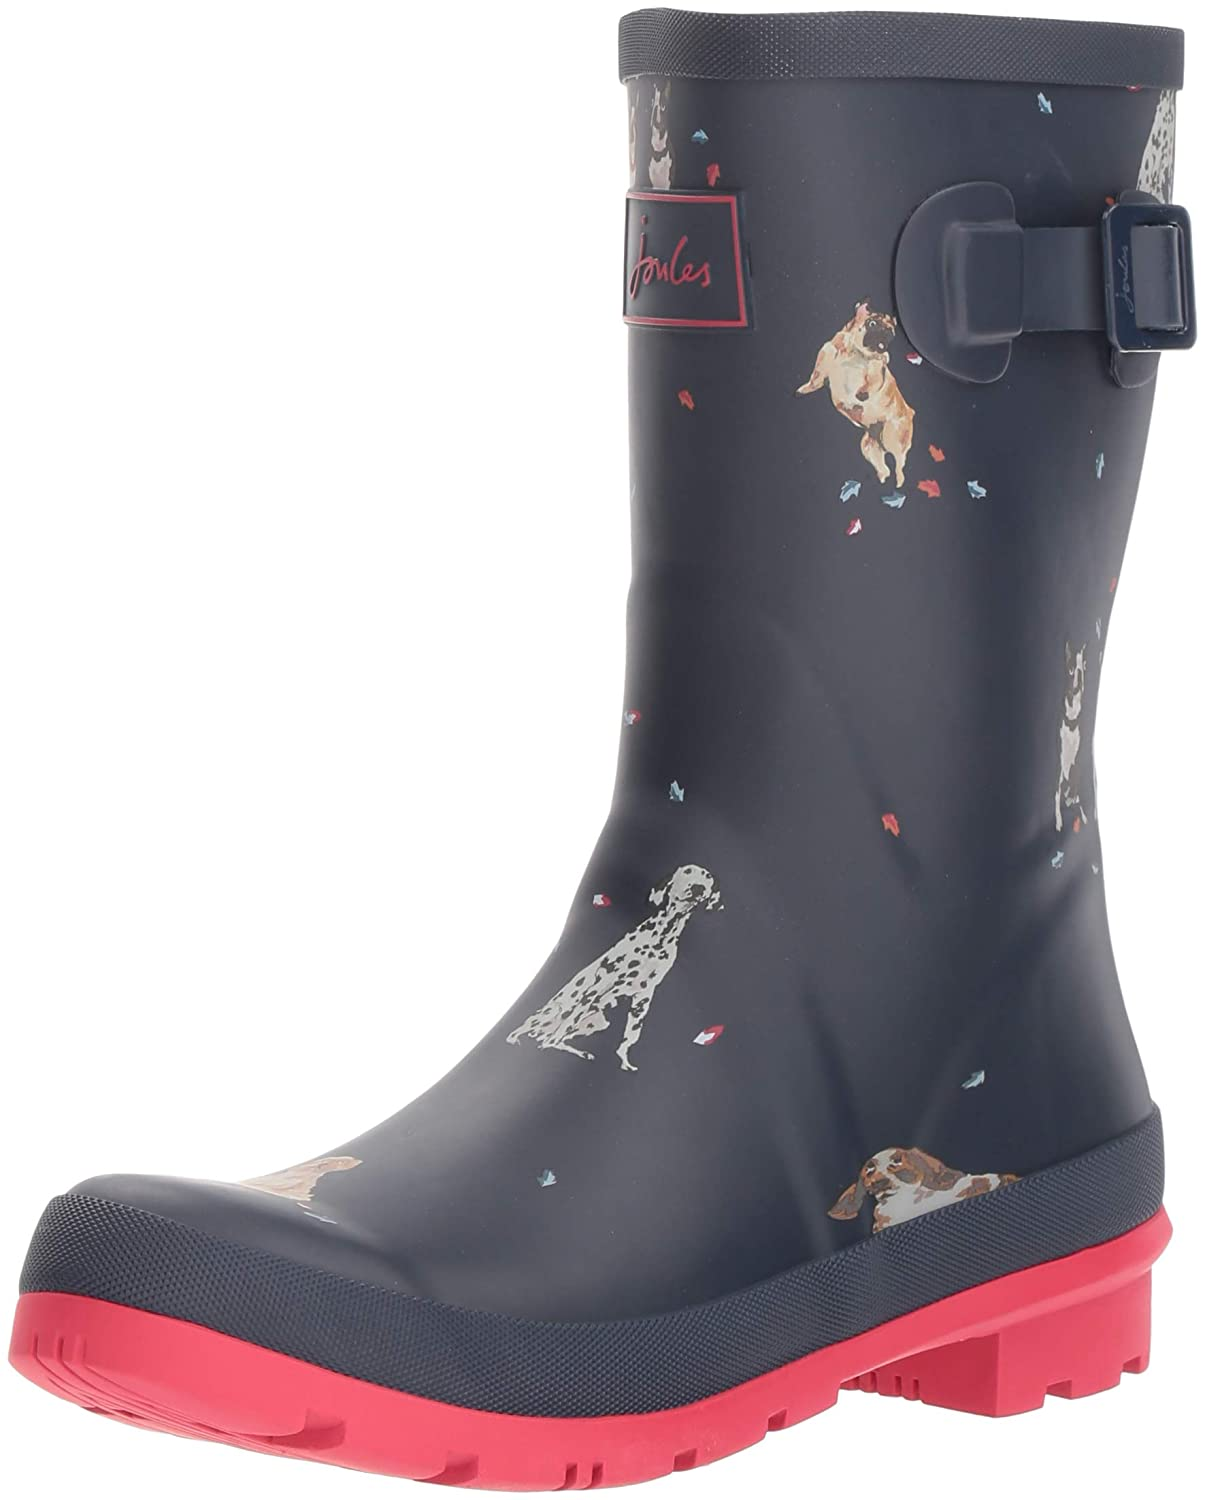 Tom Dog Joule Damen Mollywelly Kurzschaft Gummistiefel Blau (French Navy Dog Tom in Leaves Fnvdglv) 936f01